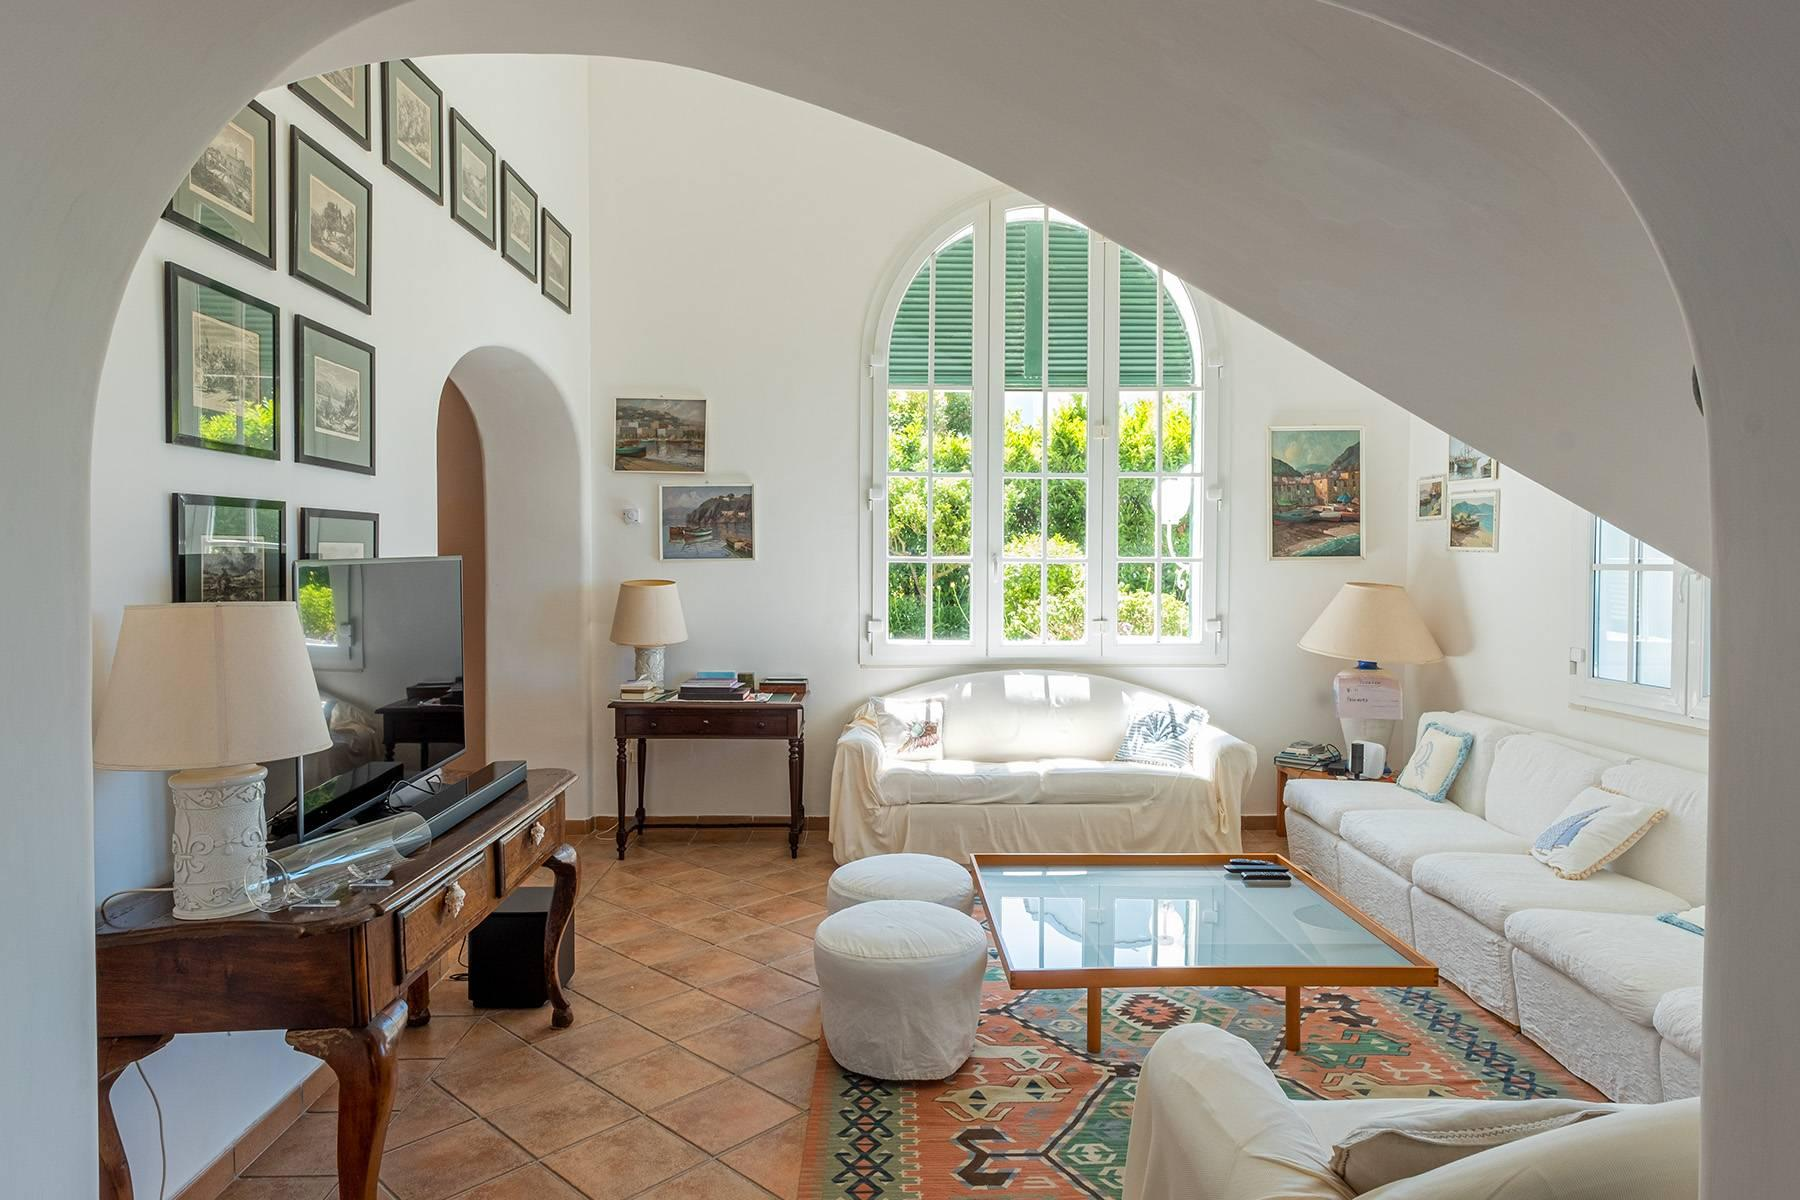 Charming villa with swimming pool in Anacapri - 2